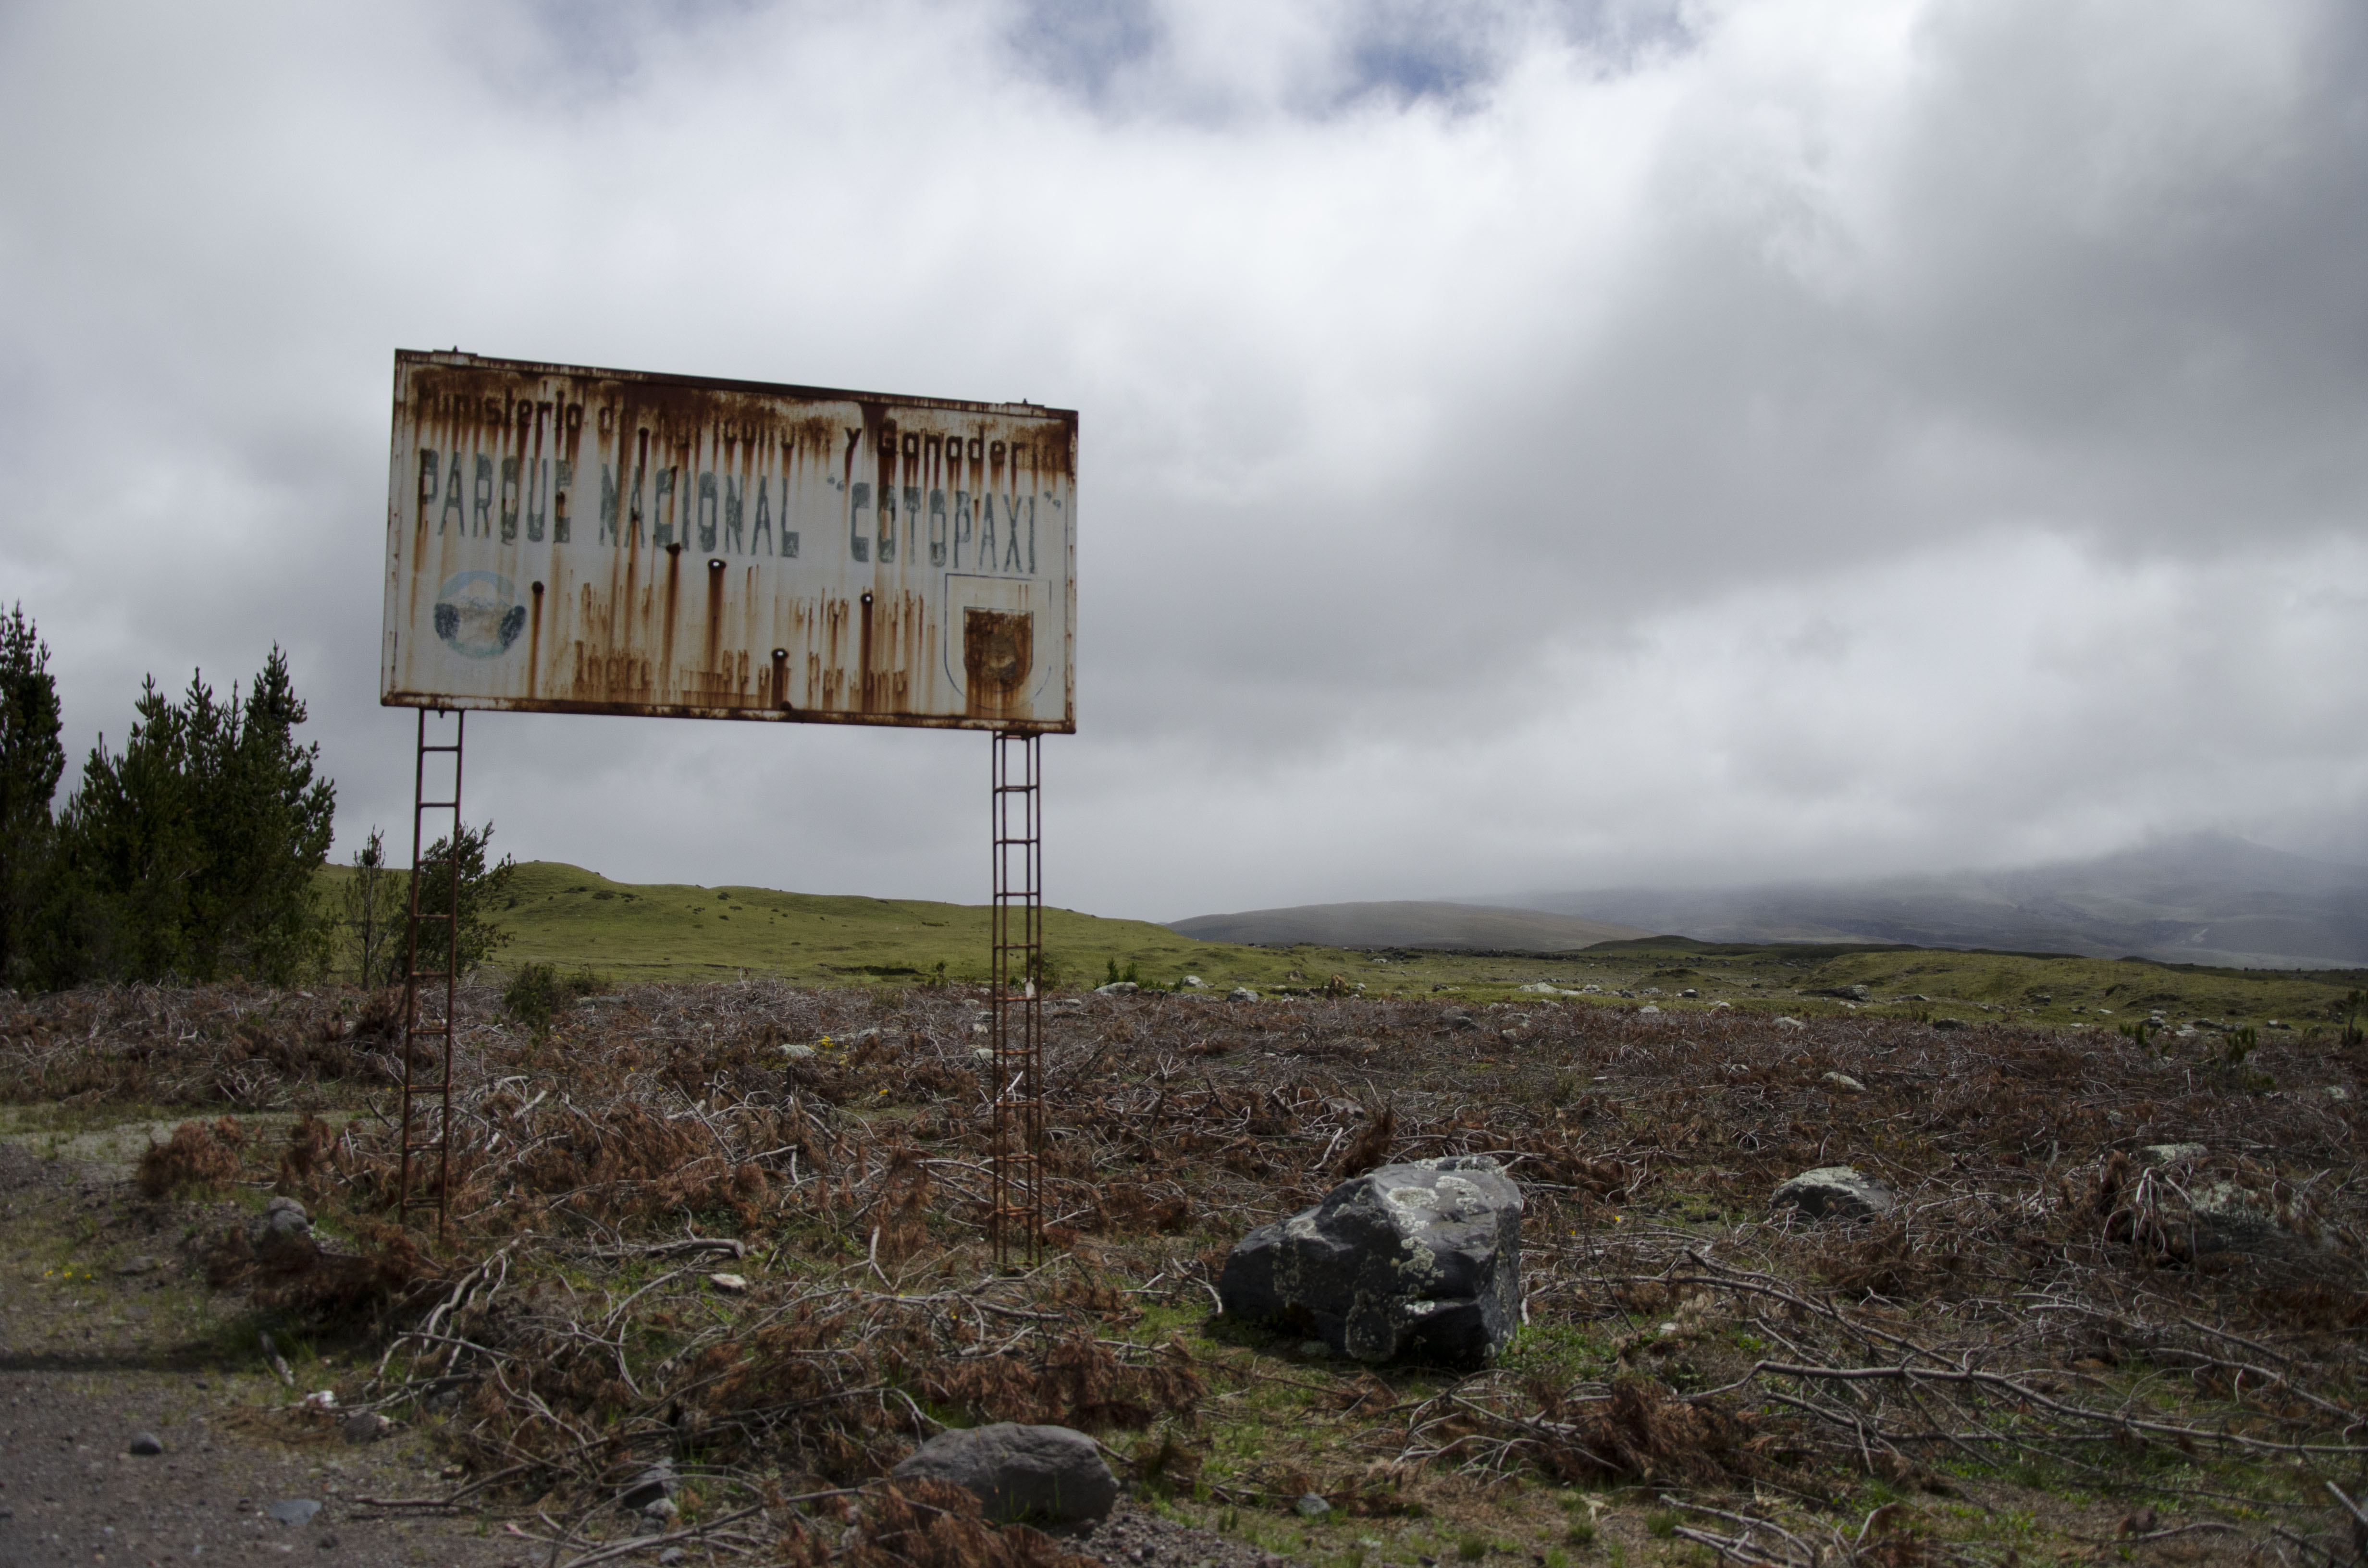 Original entrance sign to the North Gate of Cotopaxi National Park.